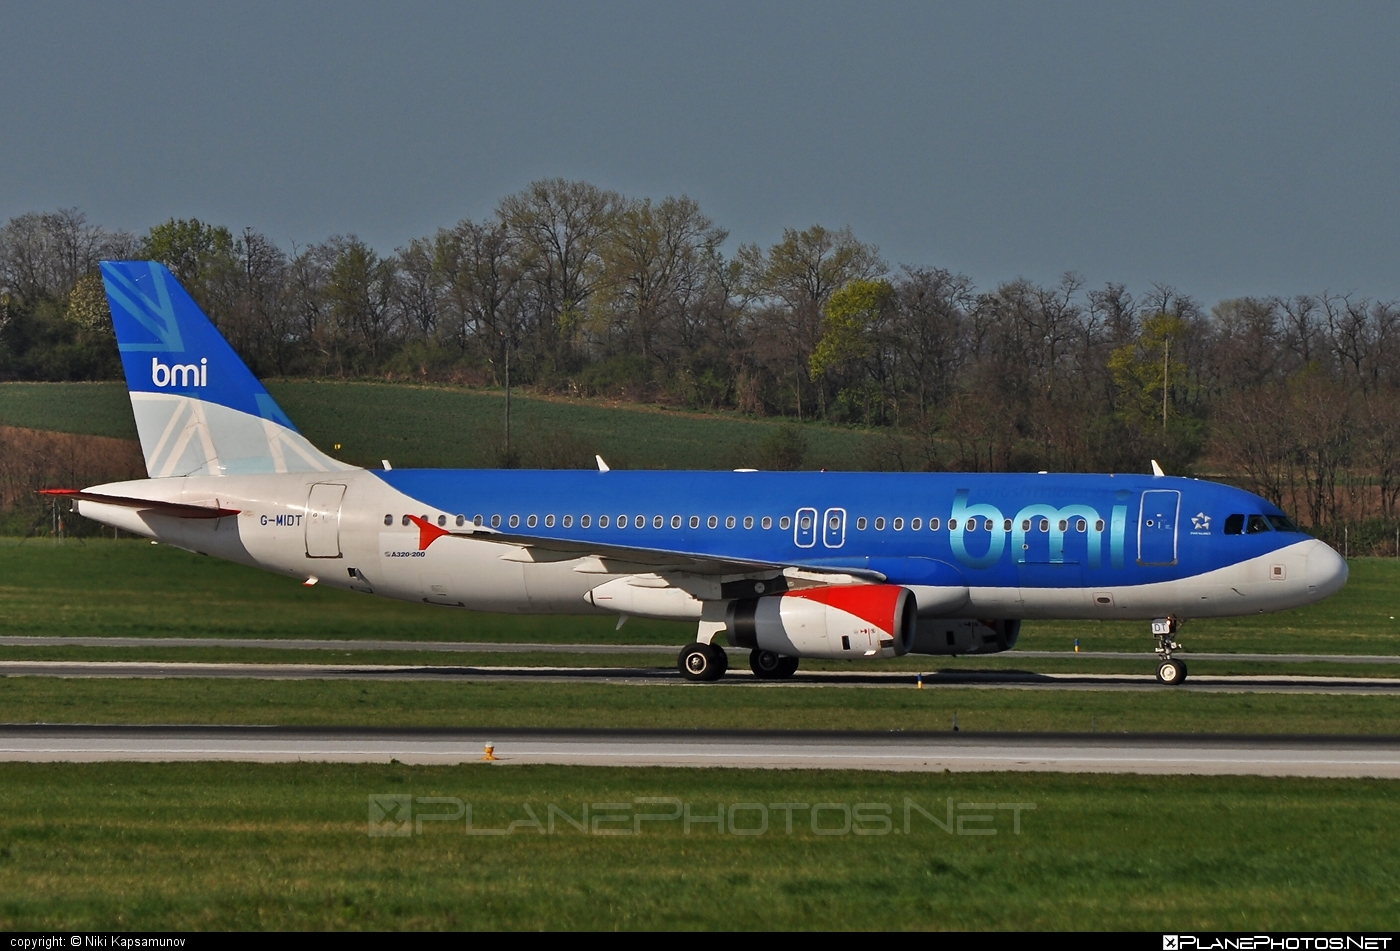 Airbus A320-232 - G-MIDT operated by bmi British Midland #a320 #a320family #airbus #airbus320